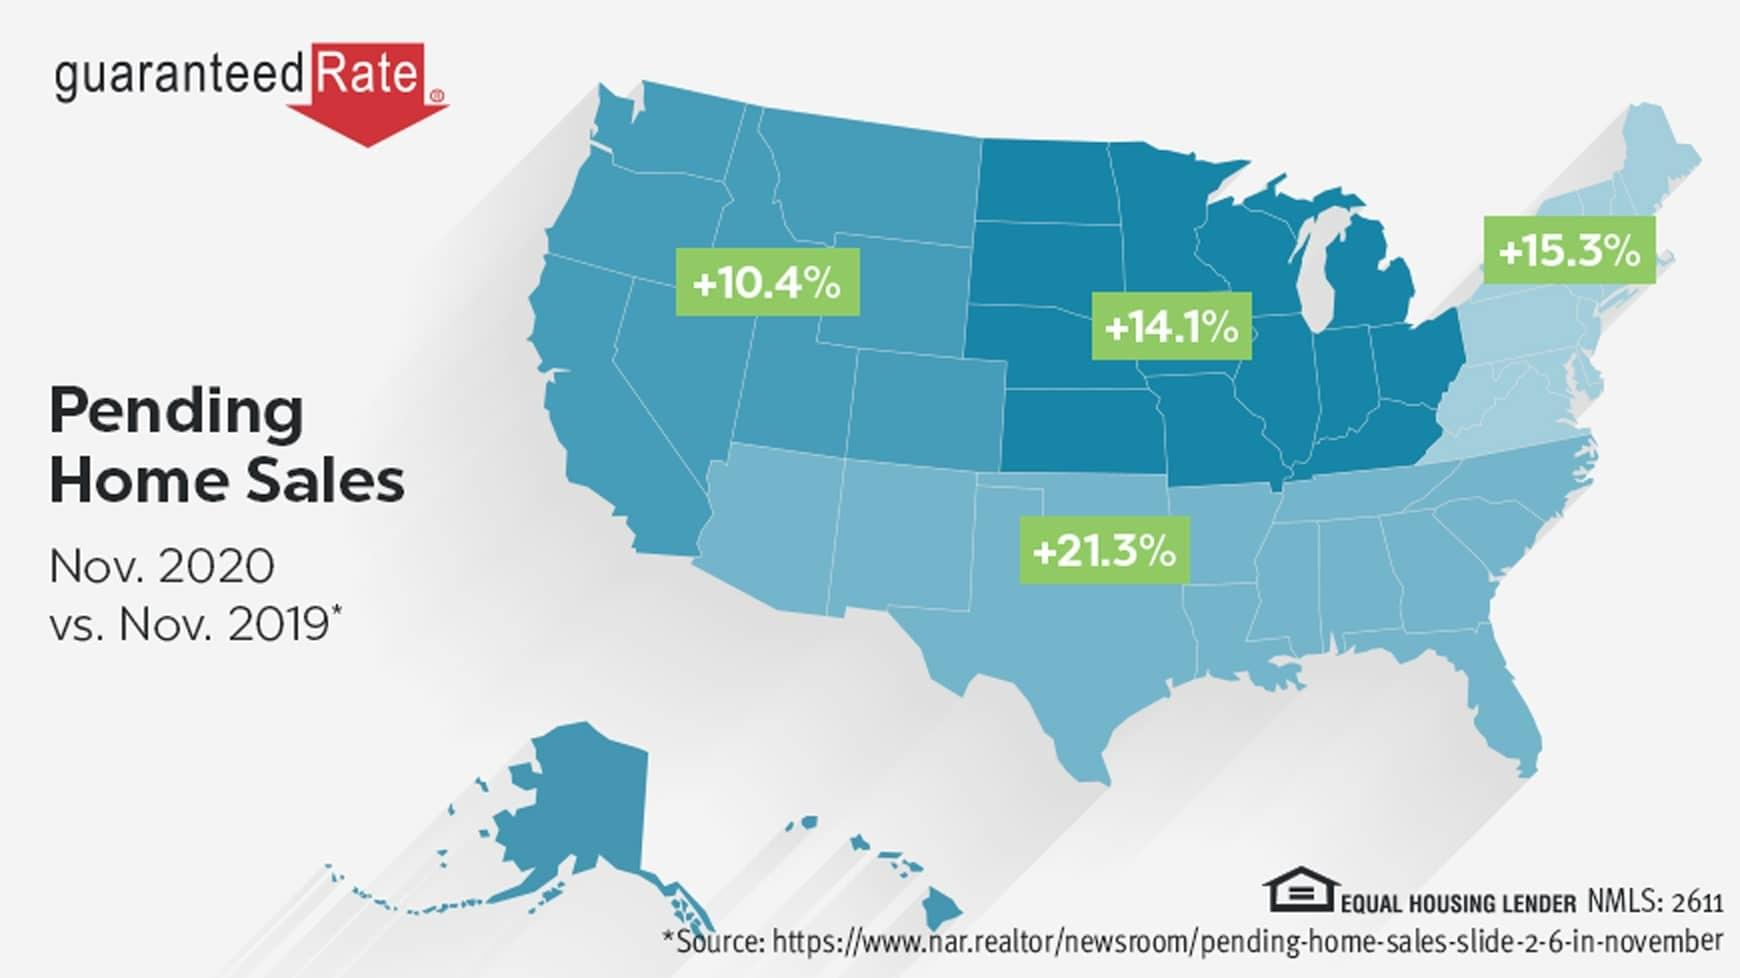 Pending home sales dip, but still at an all-time high for November